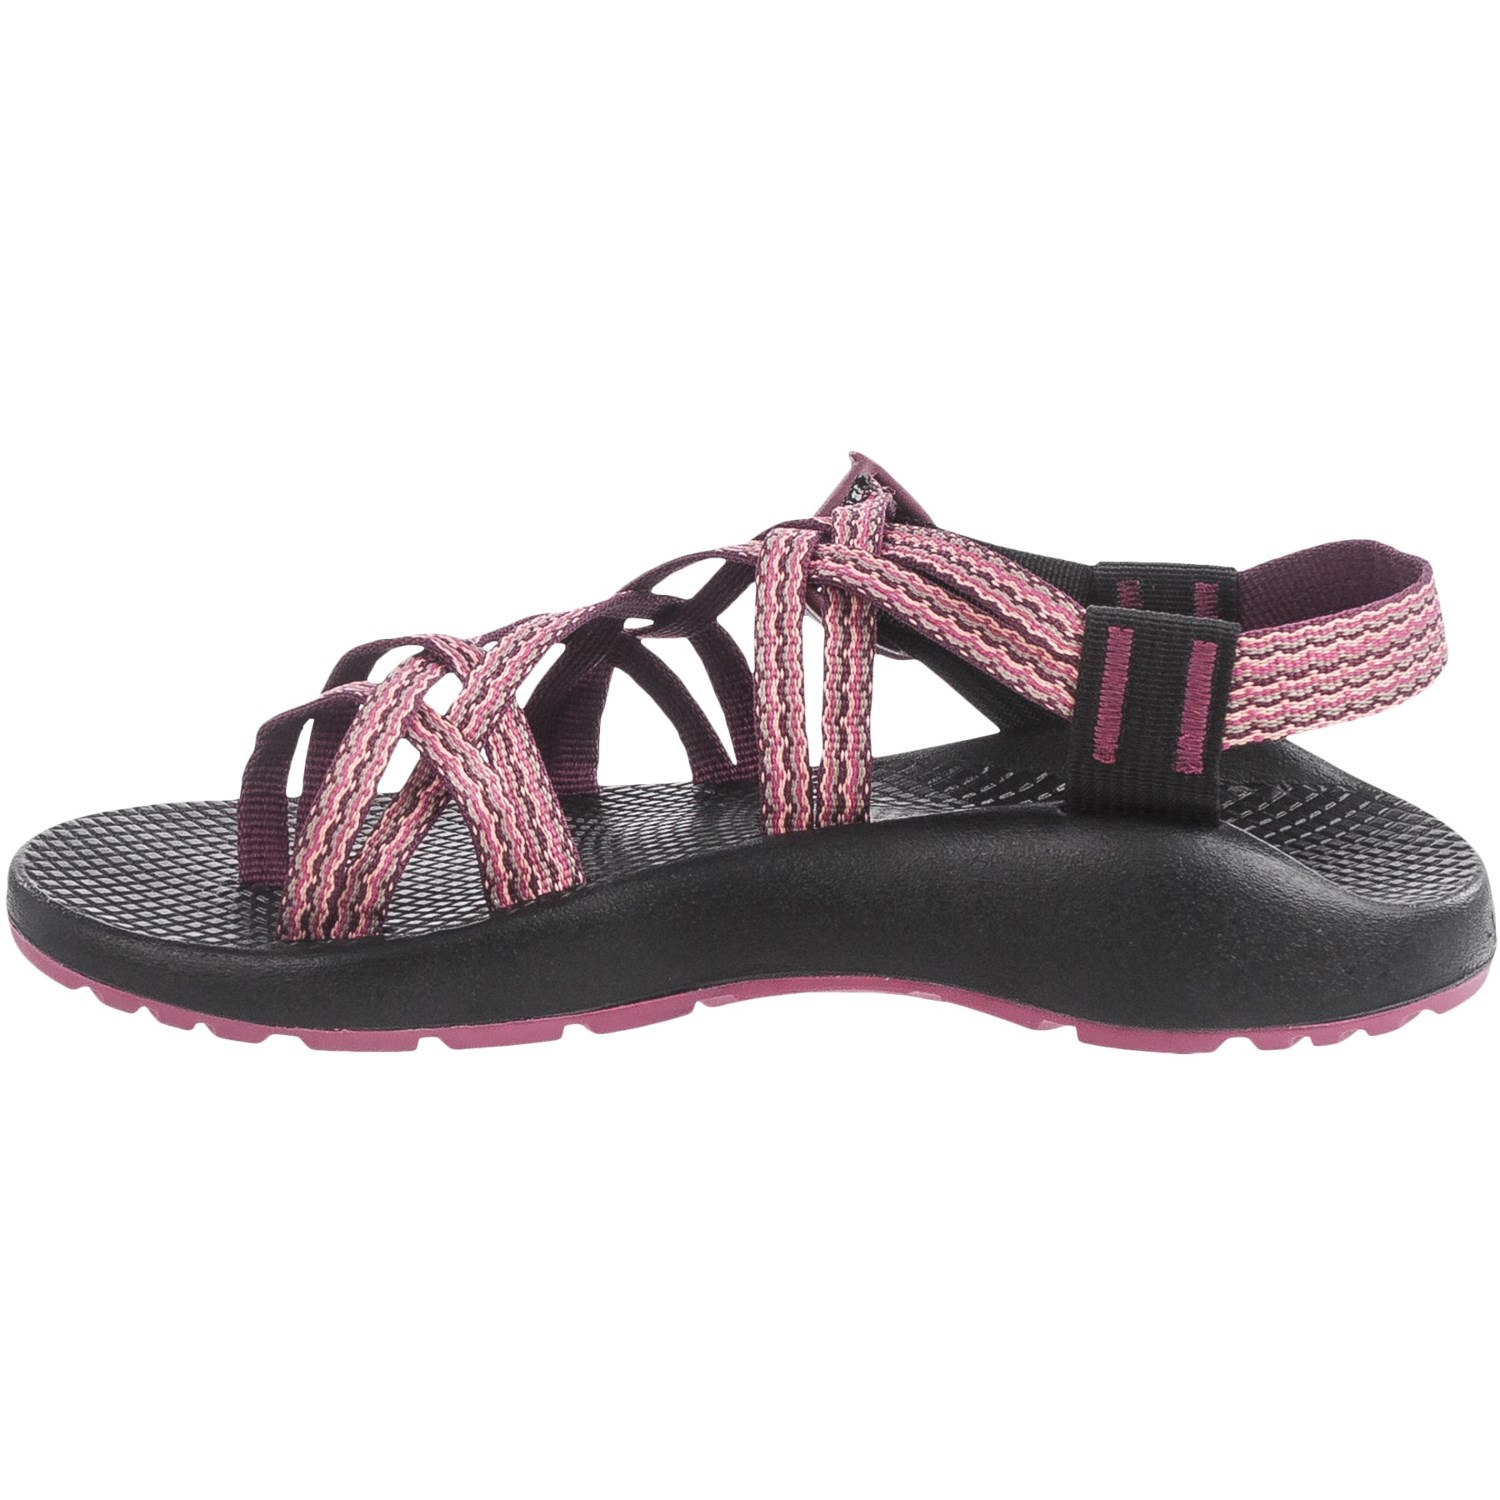 Chaco Shoes Womens